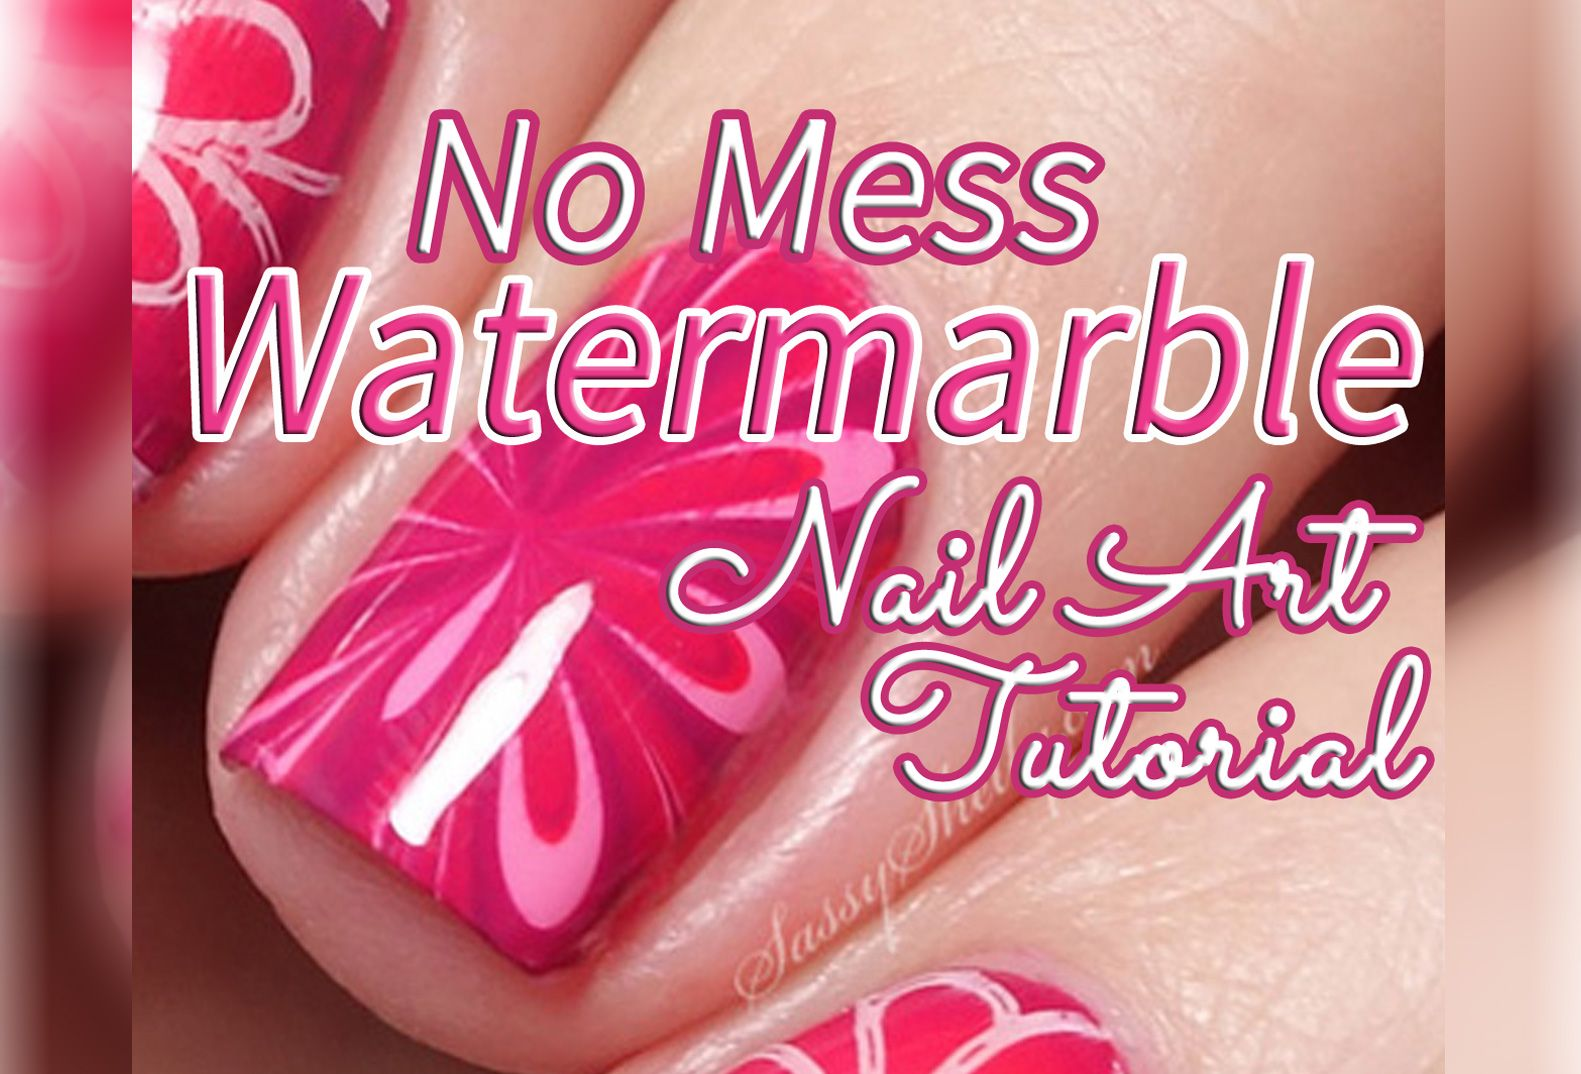 Double Nail Art Tutorial! Easy to follow step-by-step videos on how to do both a No Mess Watermarble and a Radial Gradient nail design